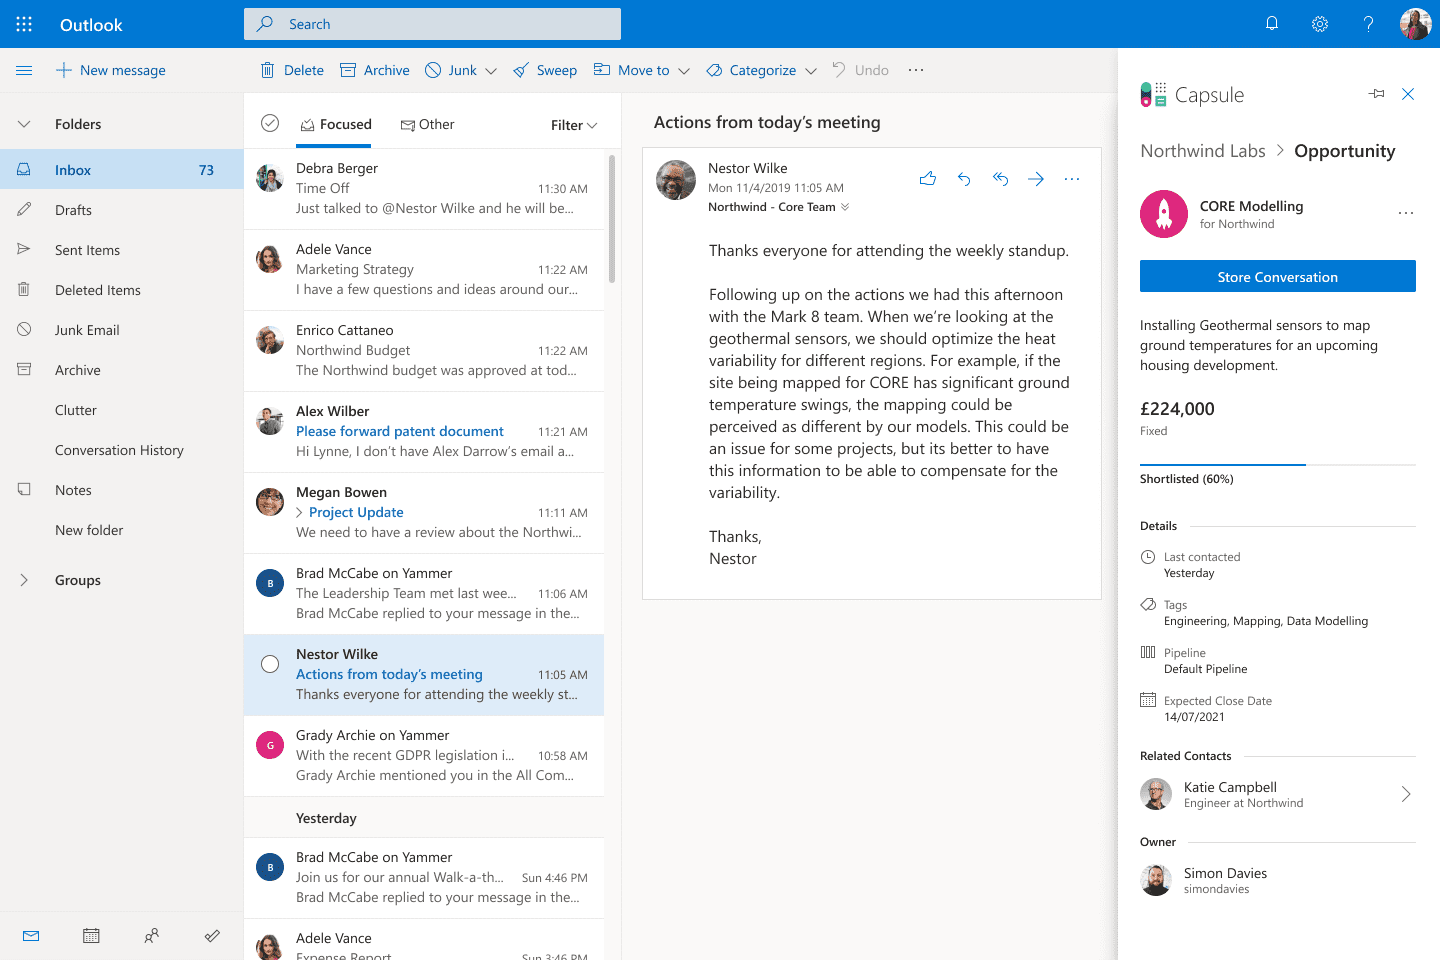 example of Capsule opportunity in Outlook